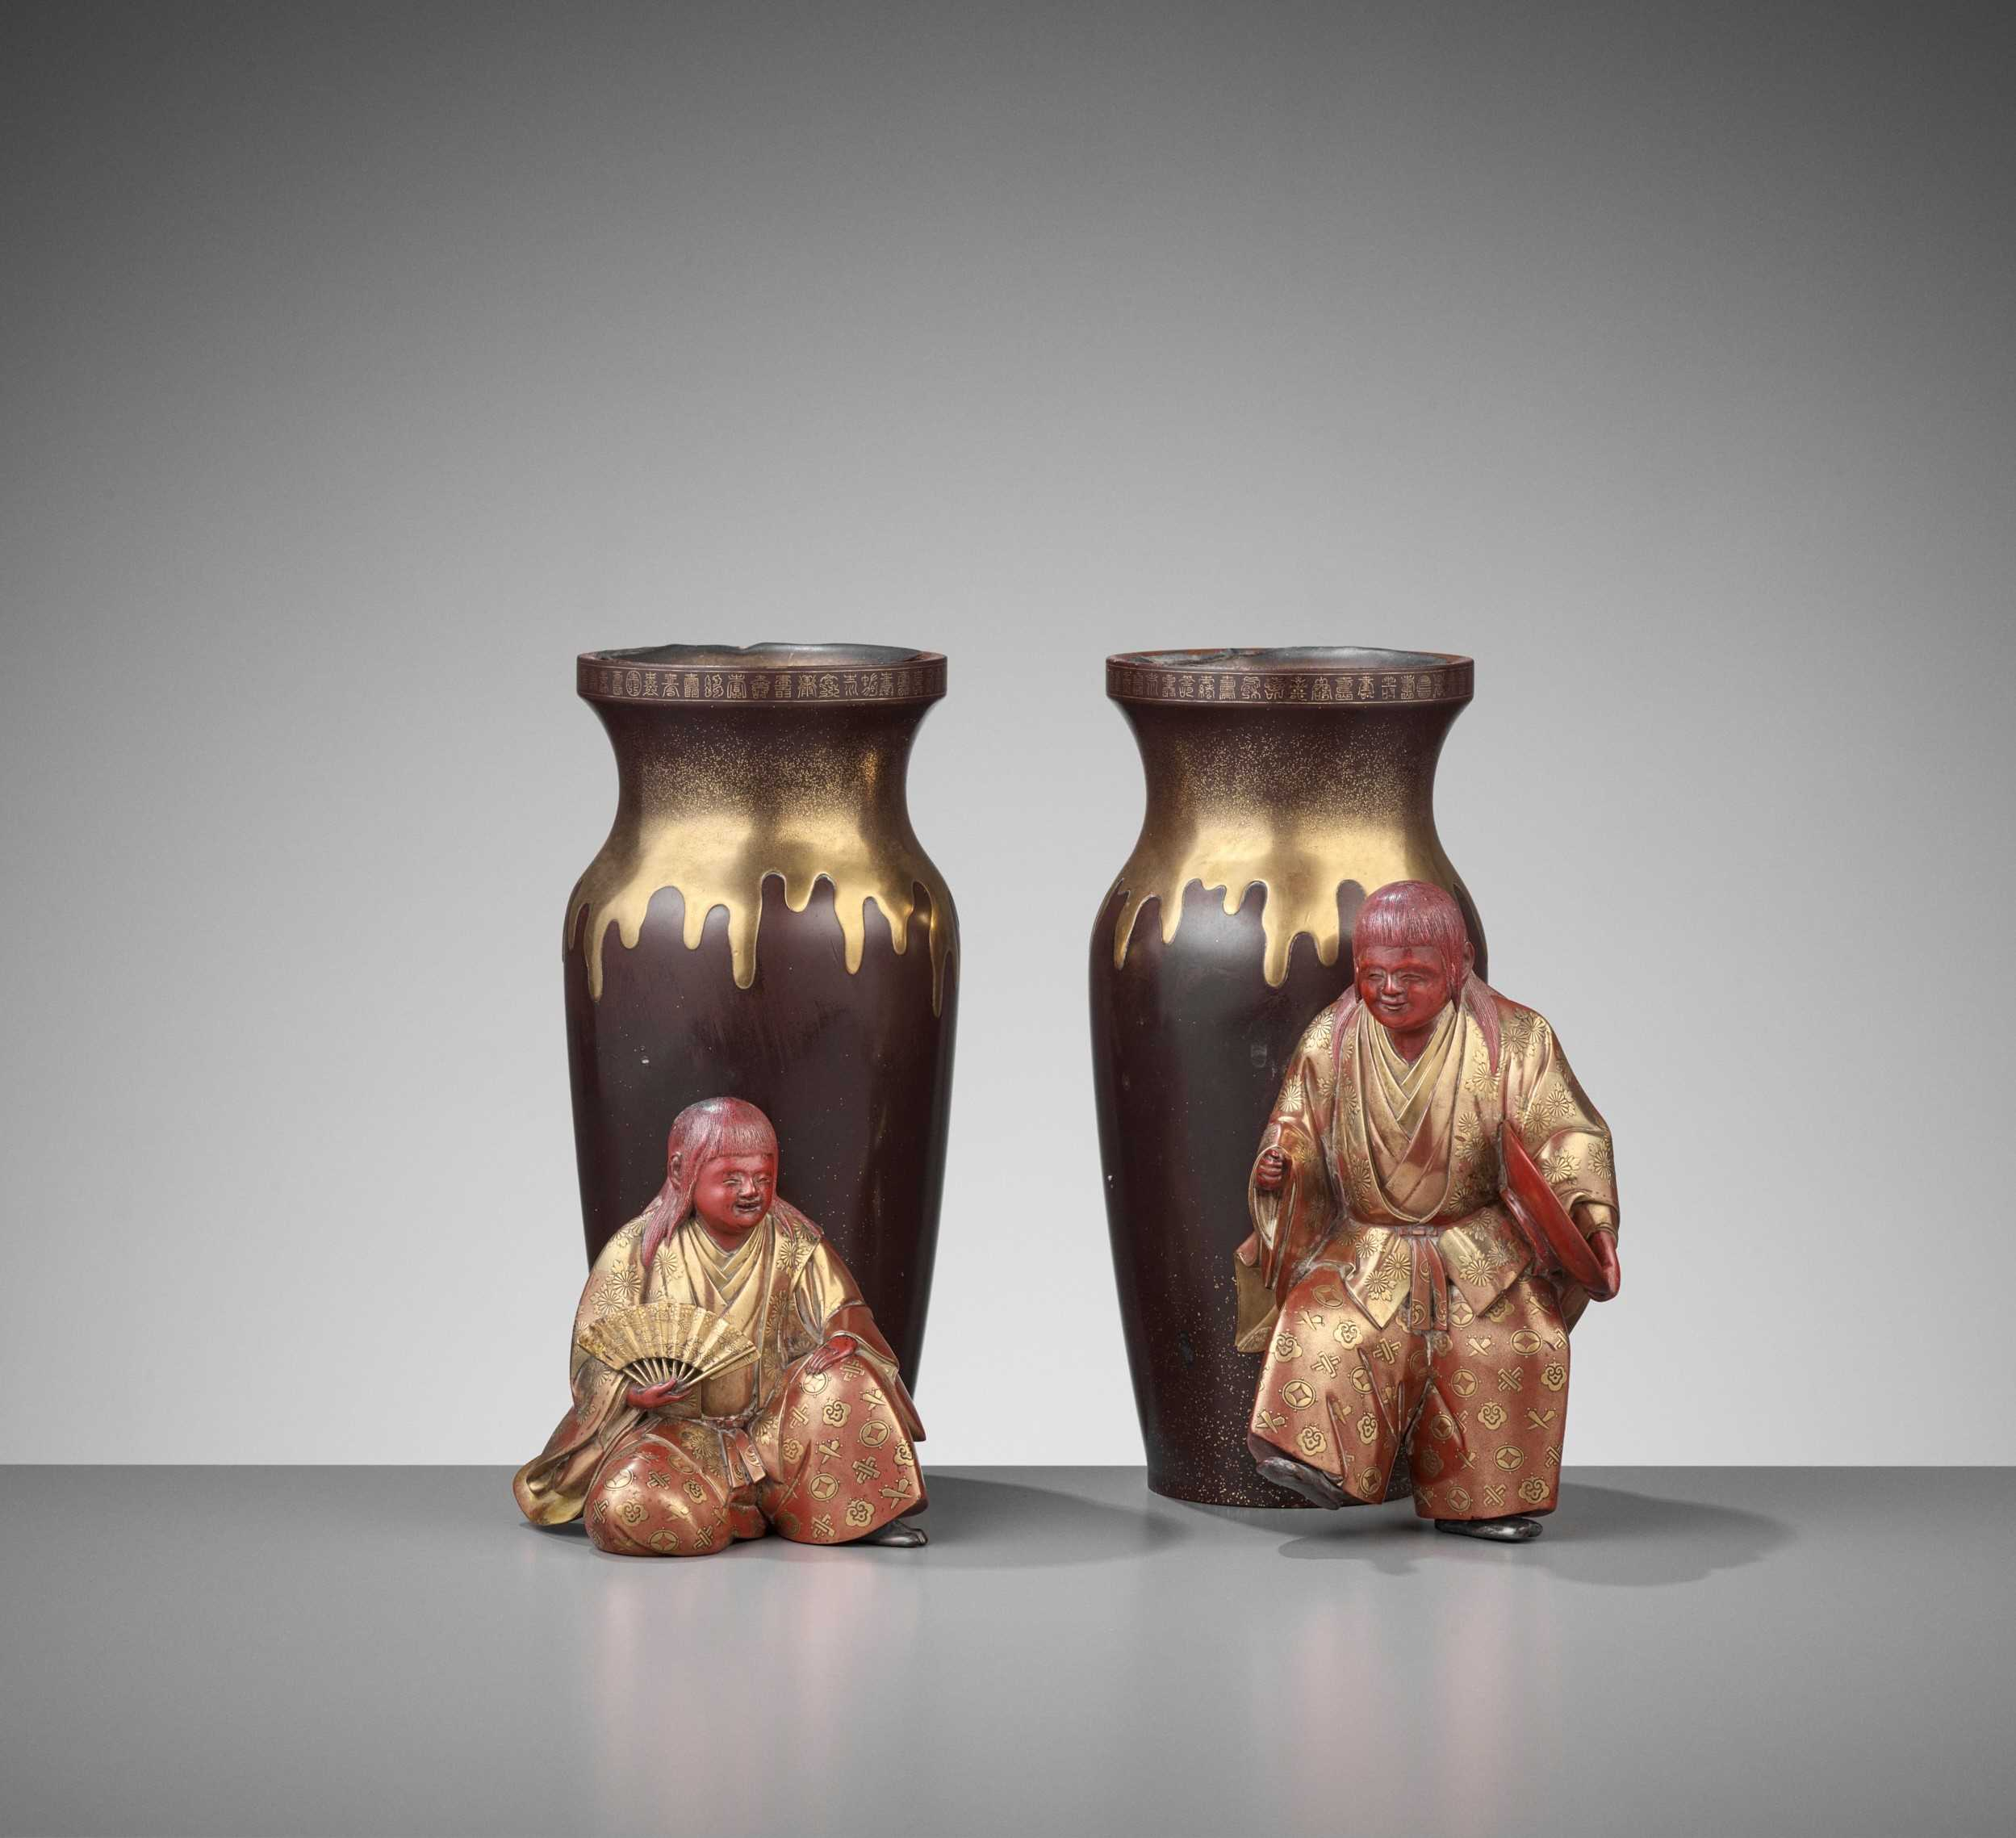 A FINE PAIR OF LACQUER VASES WITH SHOJO AND SAKE JARS